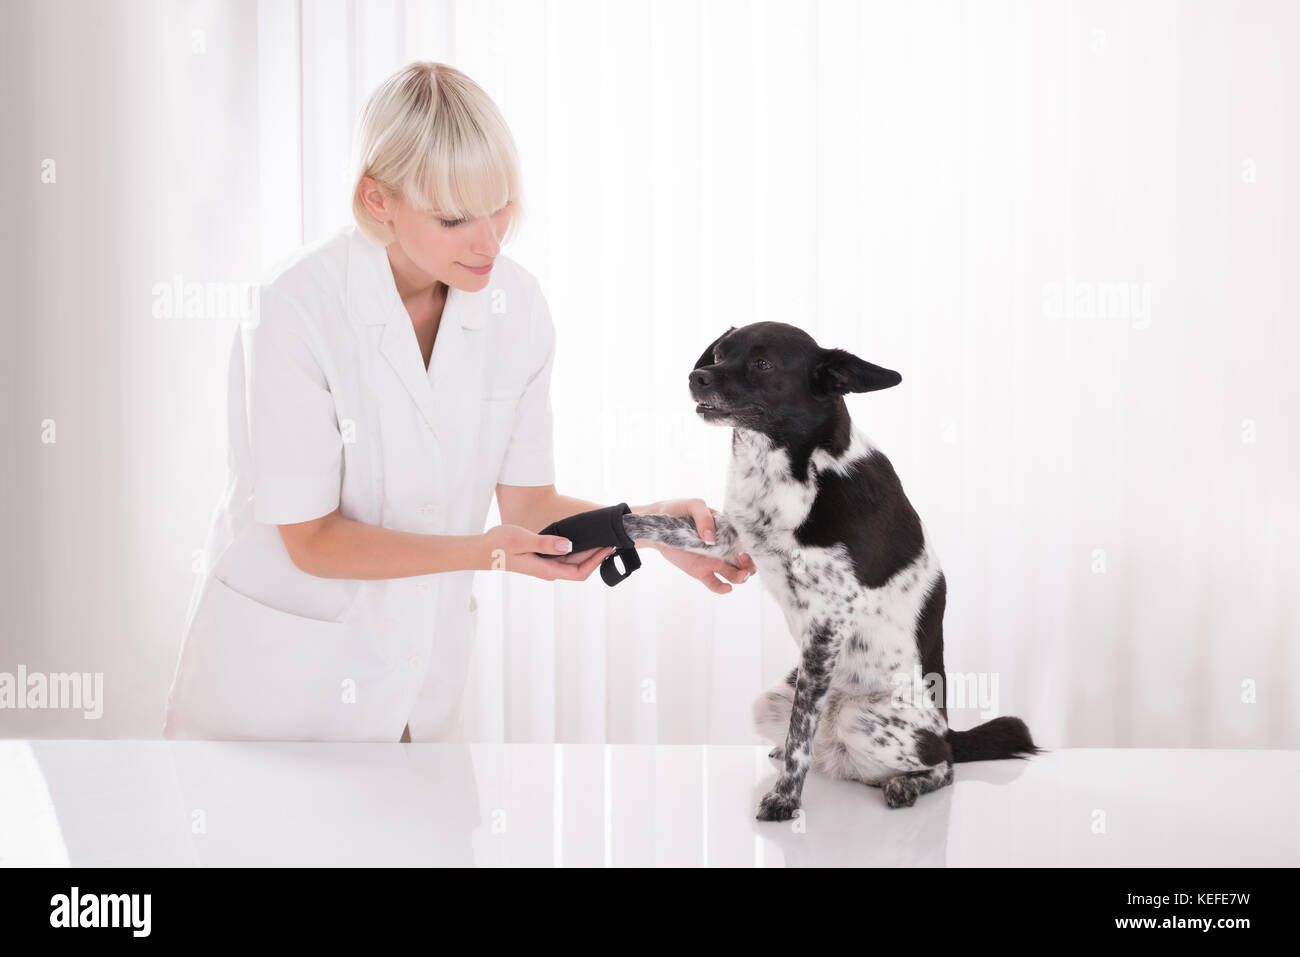 Young Female Vet Putting Bandage On Dog's Paw In Clinic - Stock Image